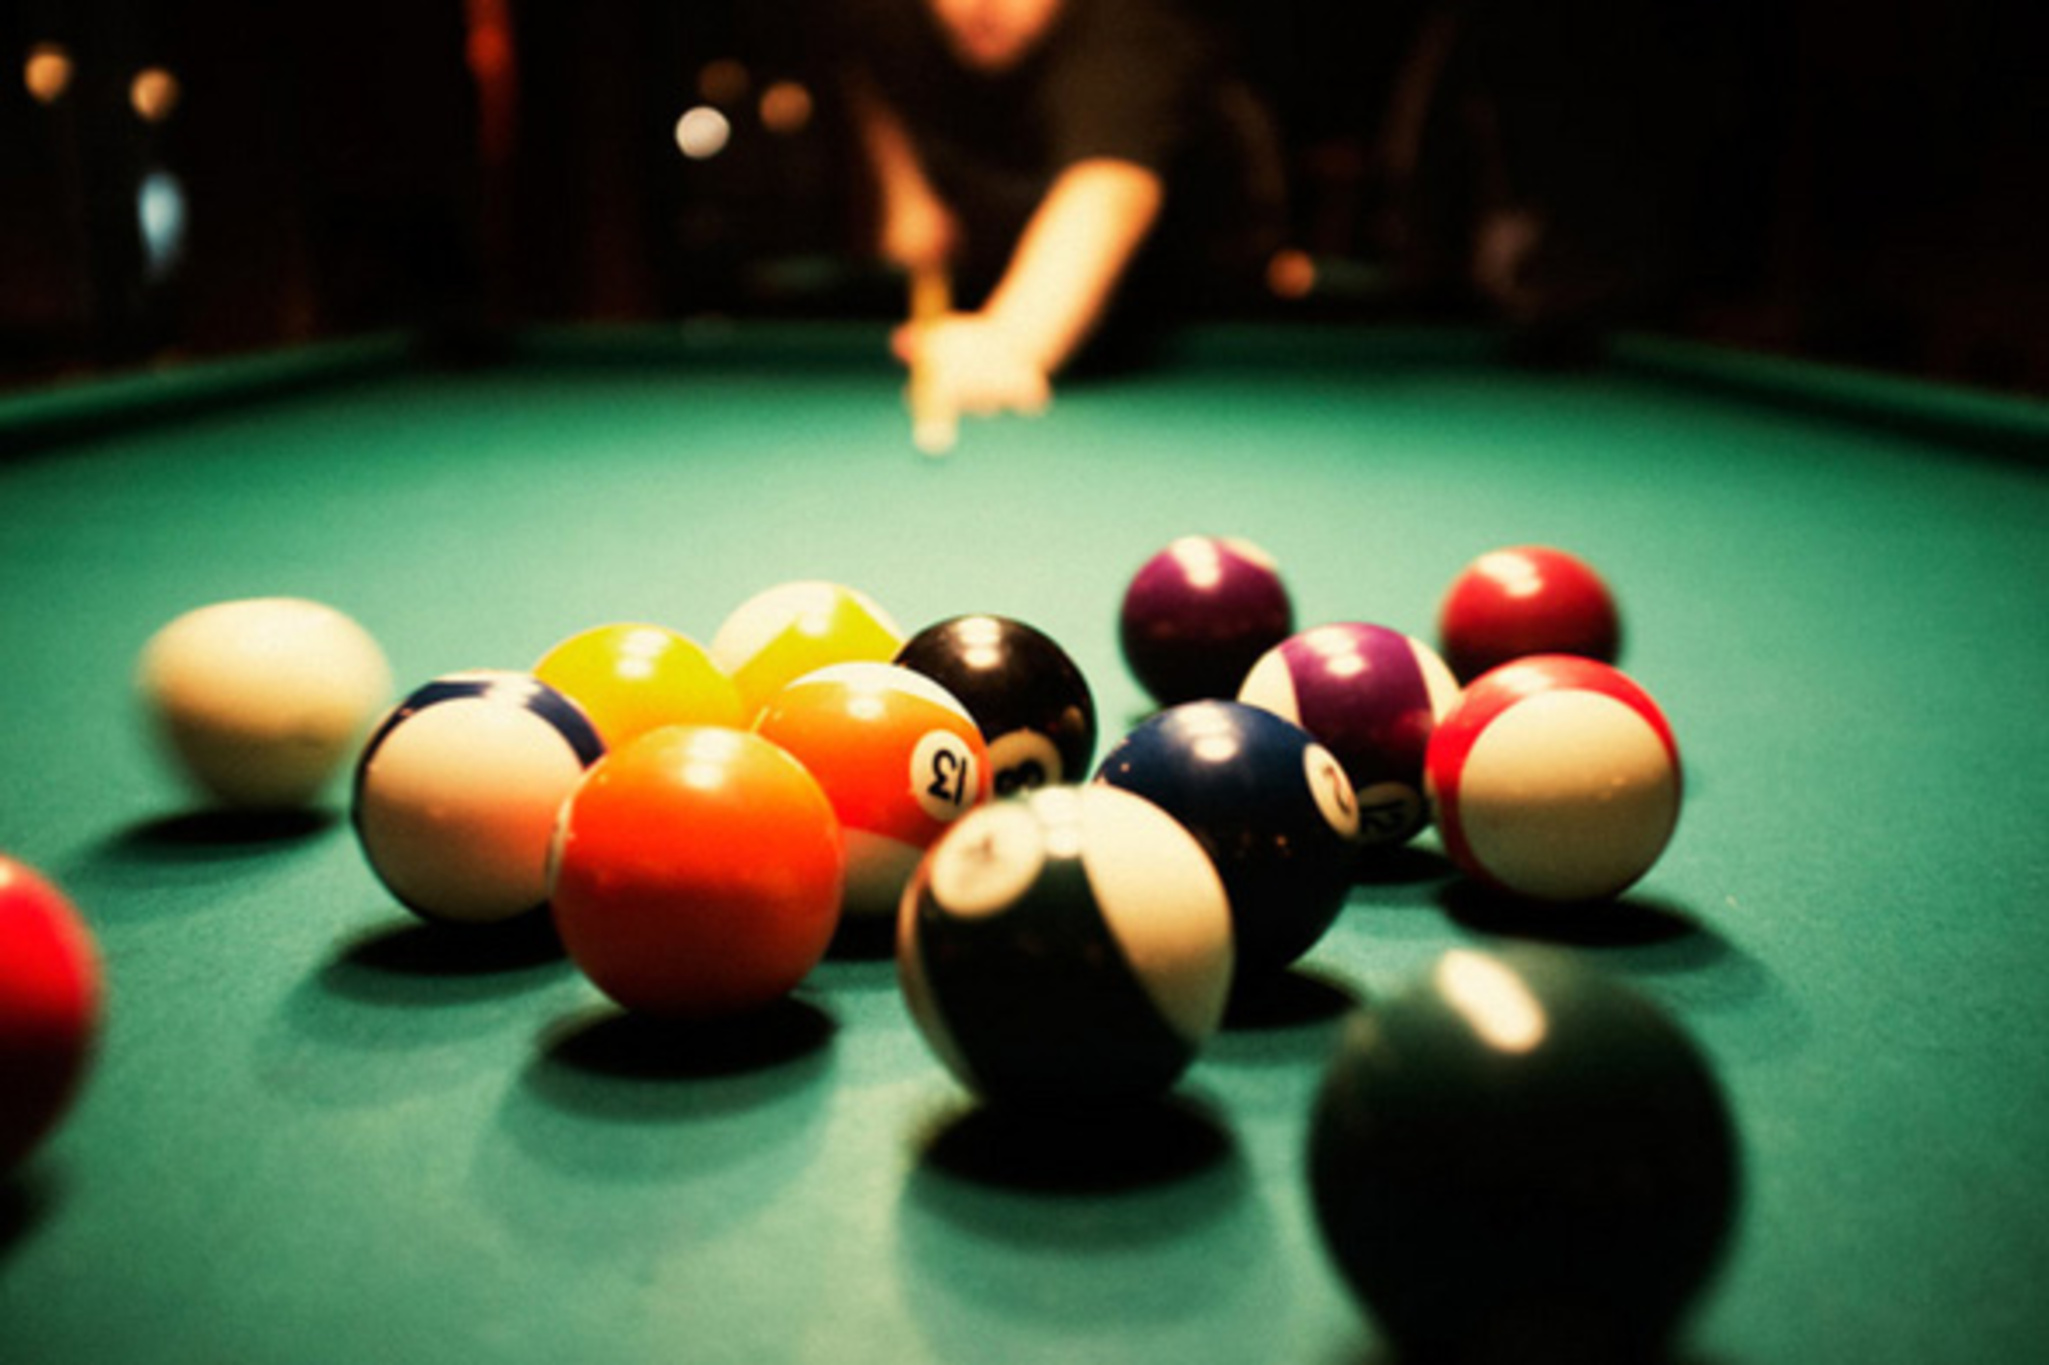 8 Ball Pool Wallpapers  HD Wallpapers Backgrounds of Your